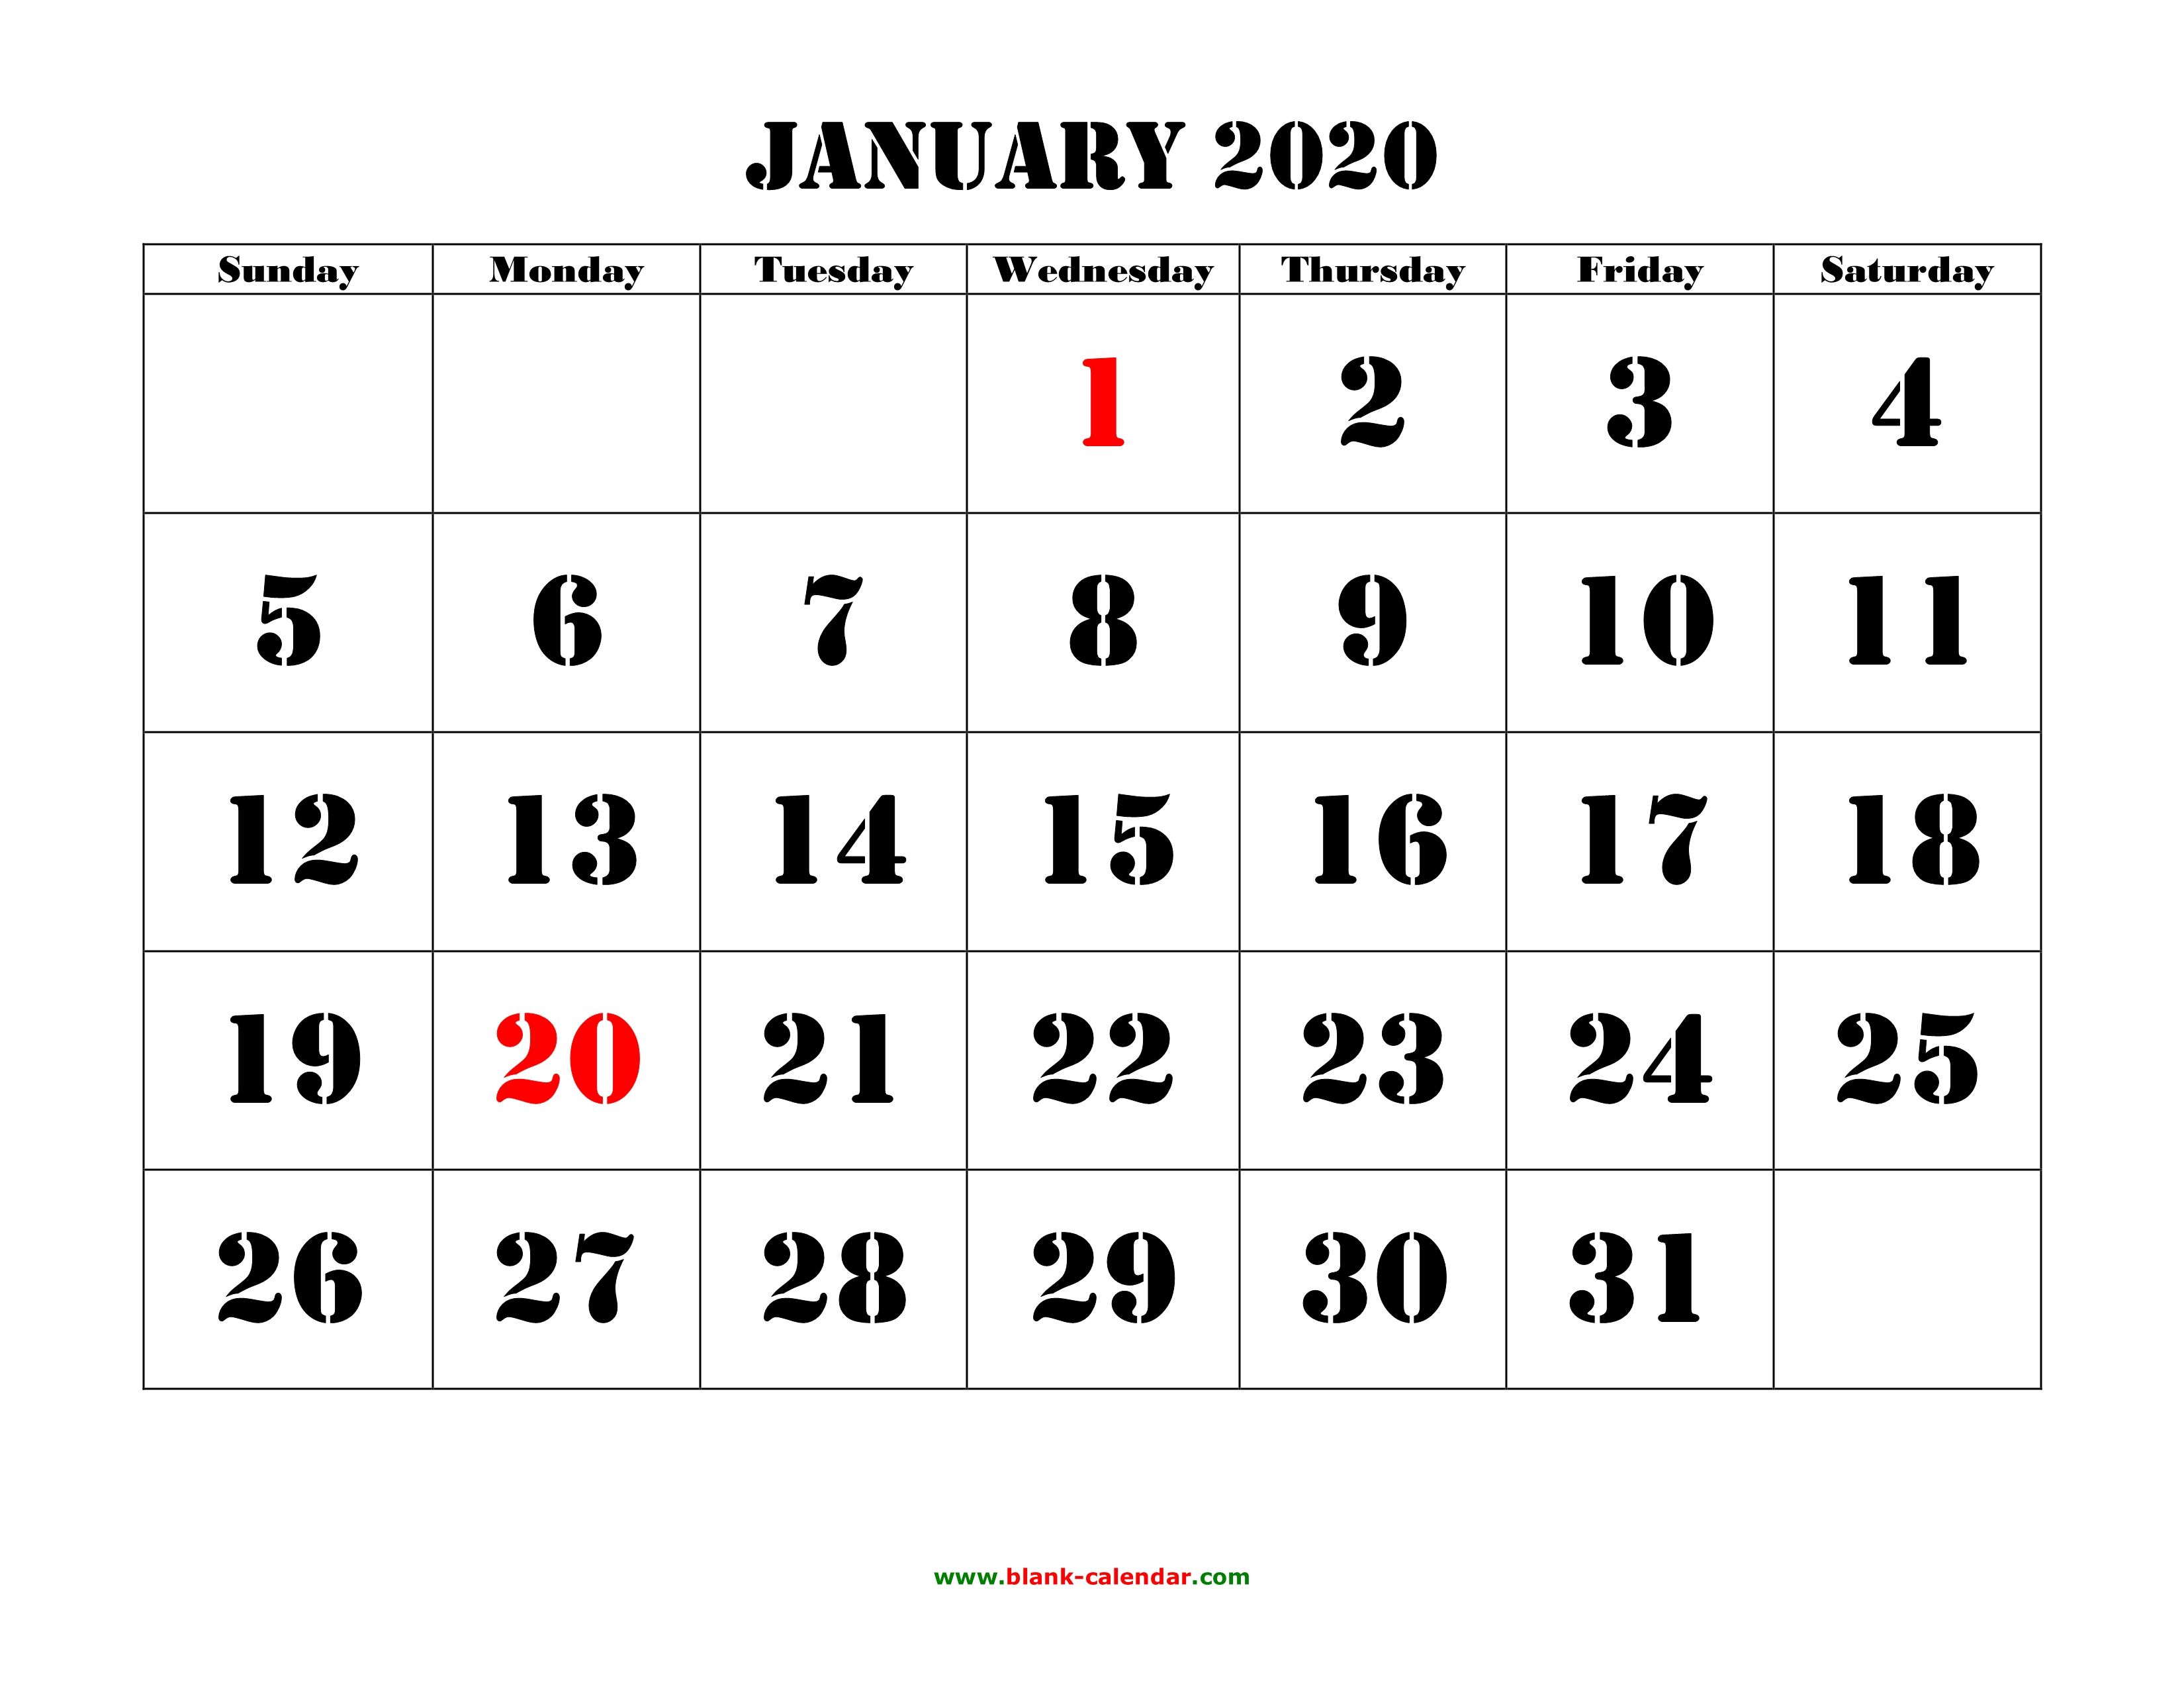 Large January 2020 Calendar Free Download Printable Calendar 2020, large font design